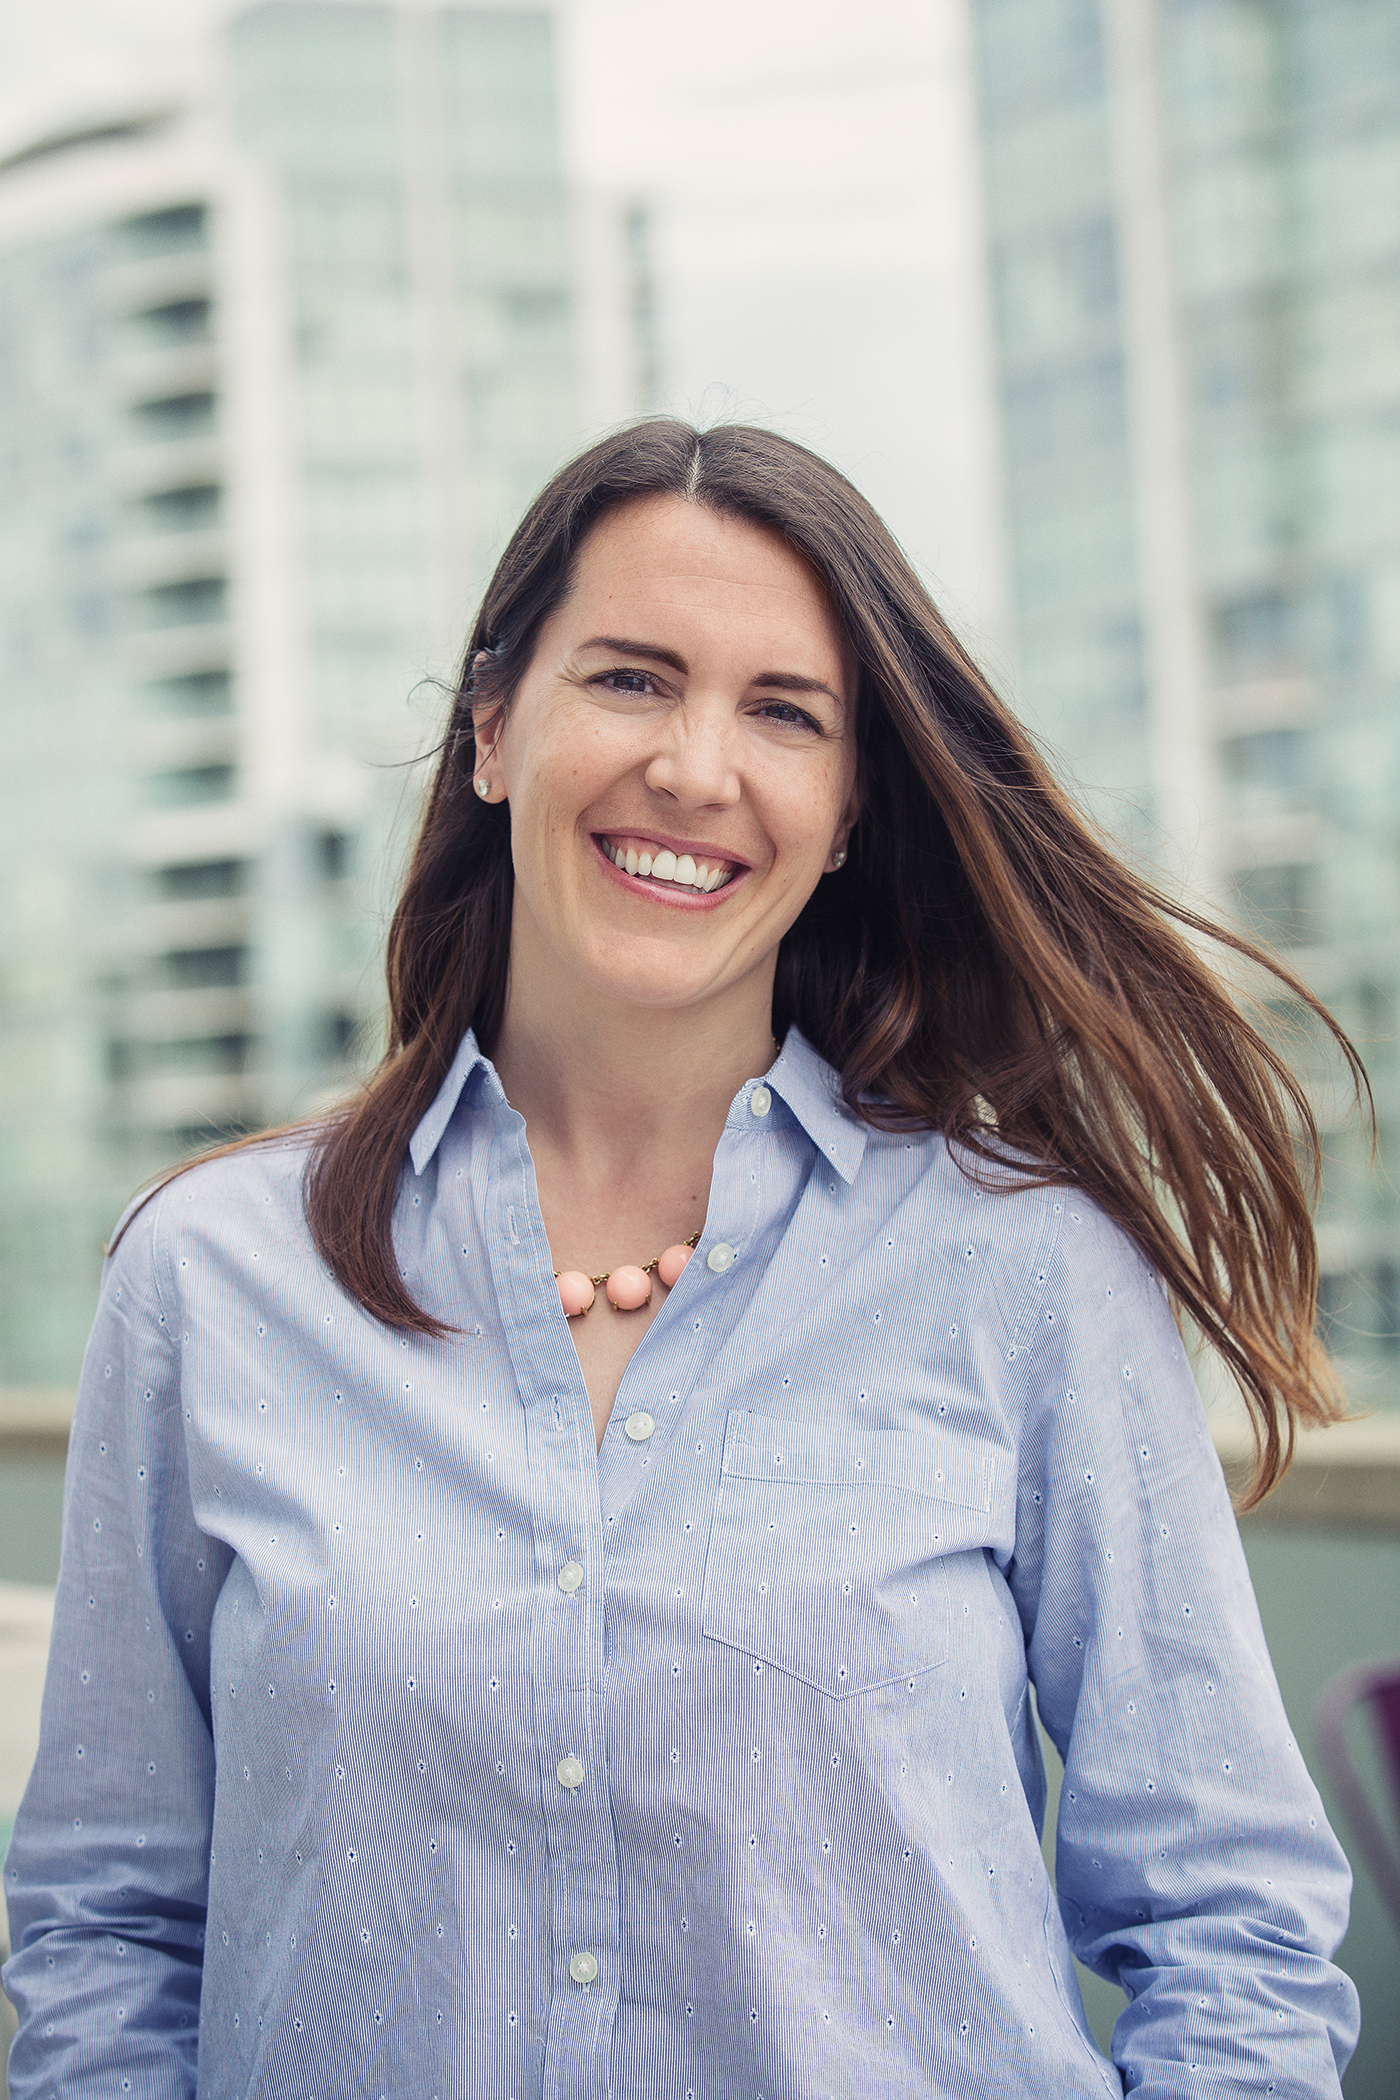 San Francisco tech professional portrait, smiling woman, blurred city background